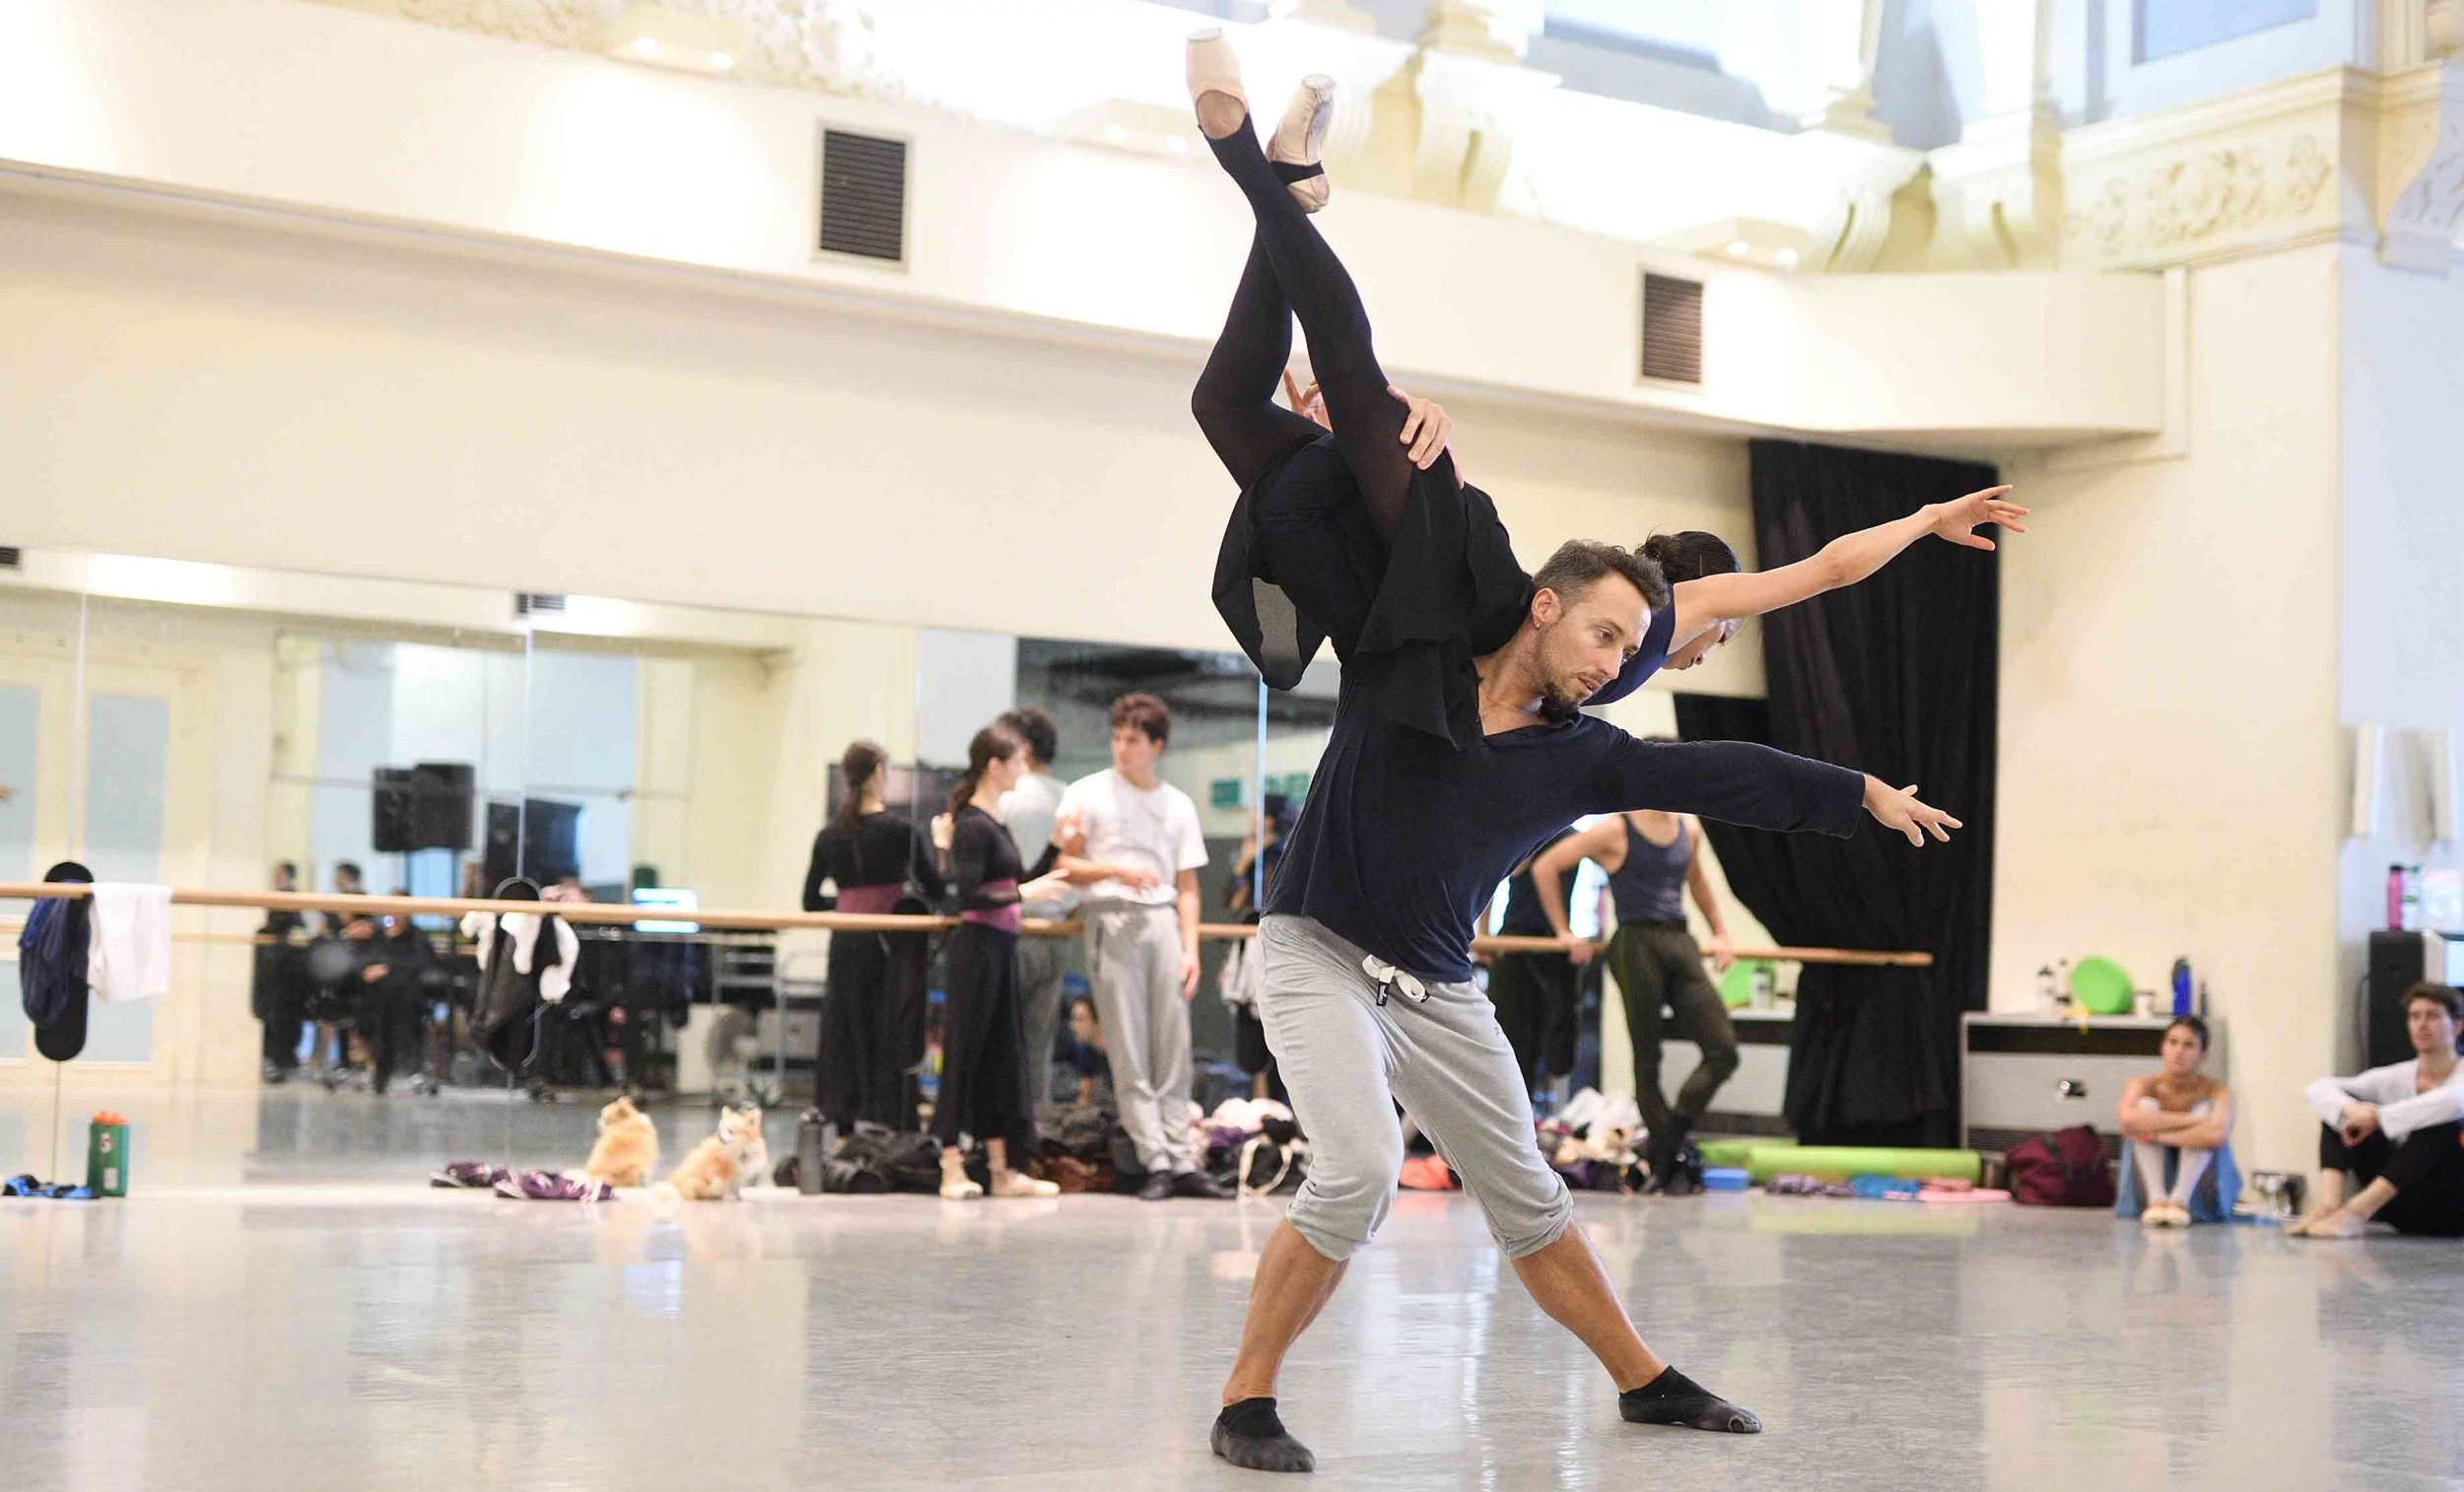 Erina Takahashi and Fabian Reimair in rehearsals for Liam Scarlett's No Man's Land © Laurent Liotardo.